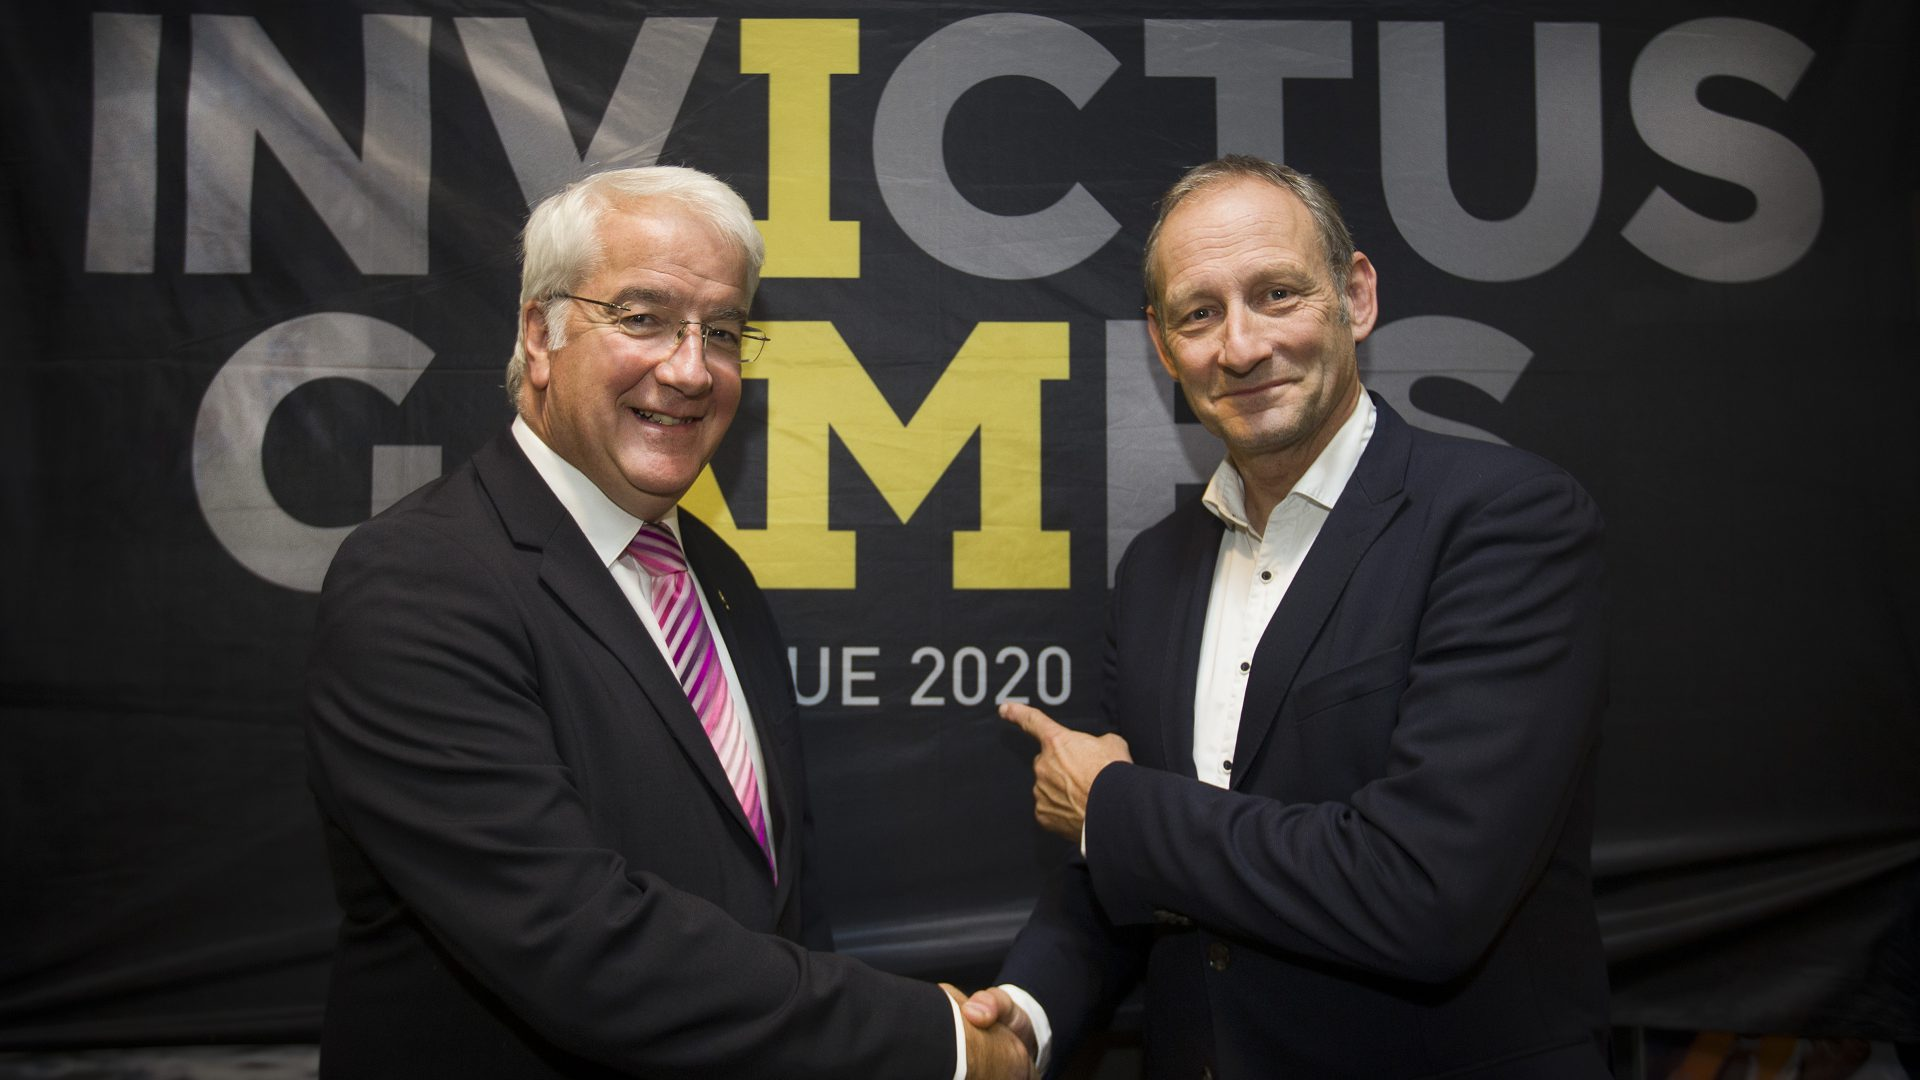 Invictus Games 2020.Lockheed Martin Announced As An Official Supporter Of The